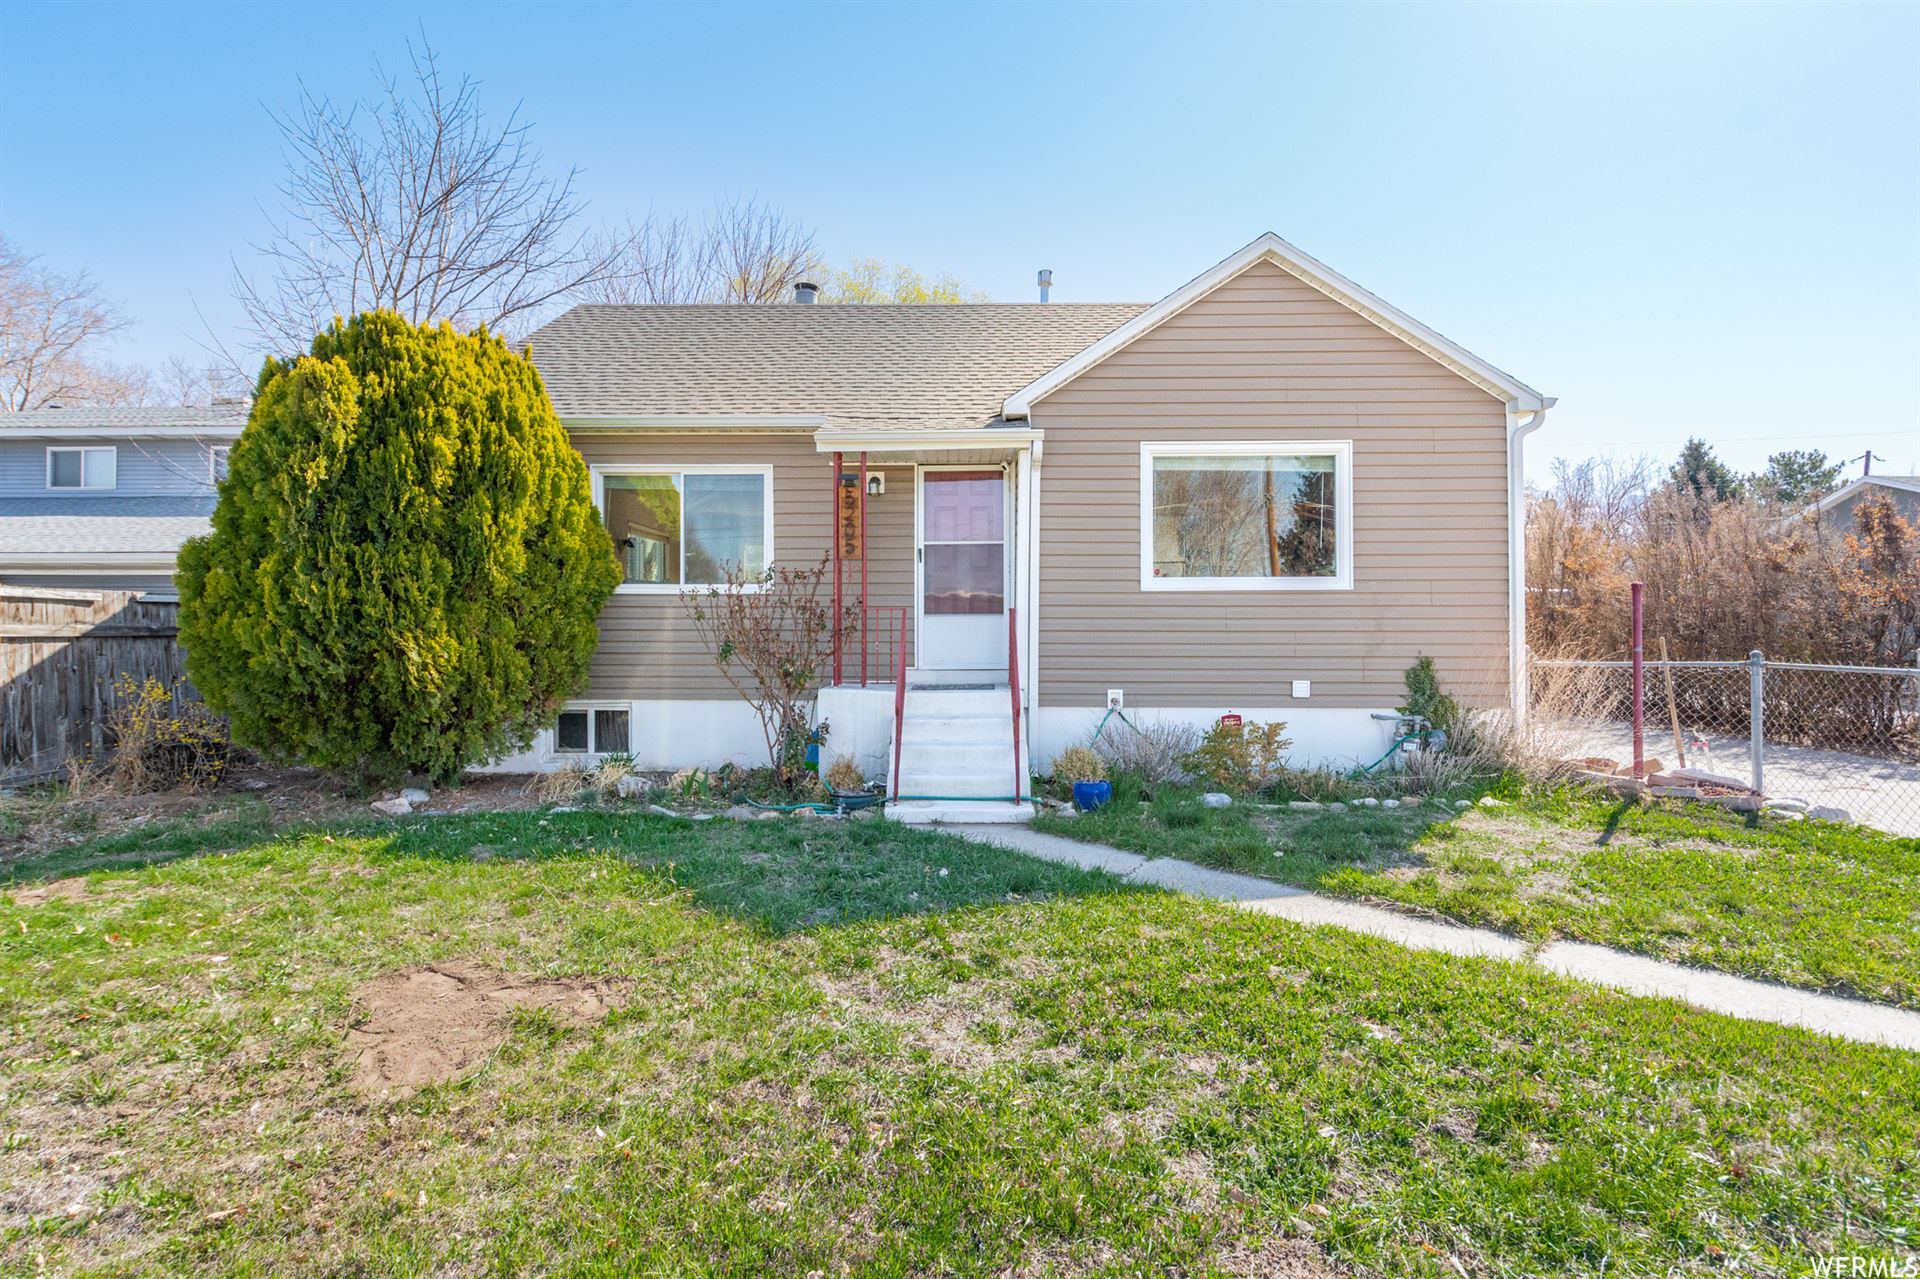 Photo of 5205 S 900 E, Murray, UT 84117 (MLS # 1733188)